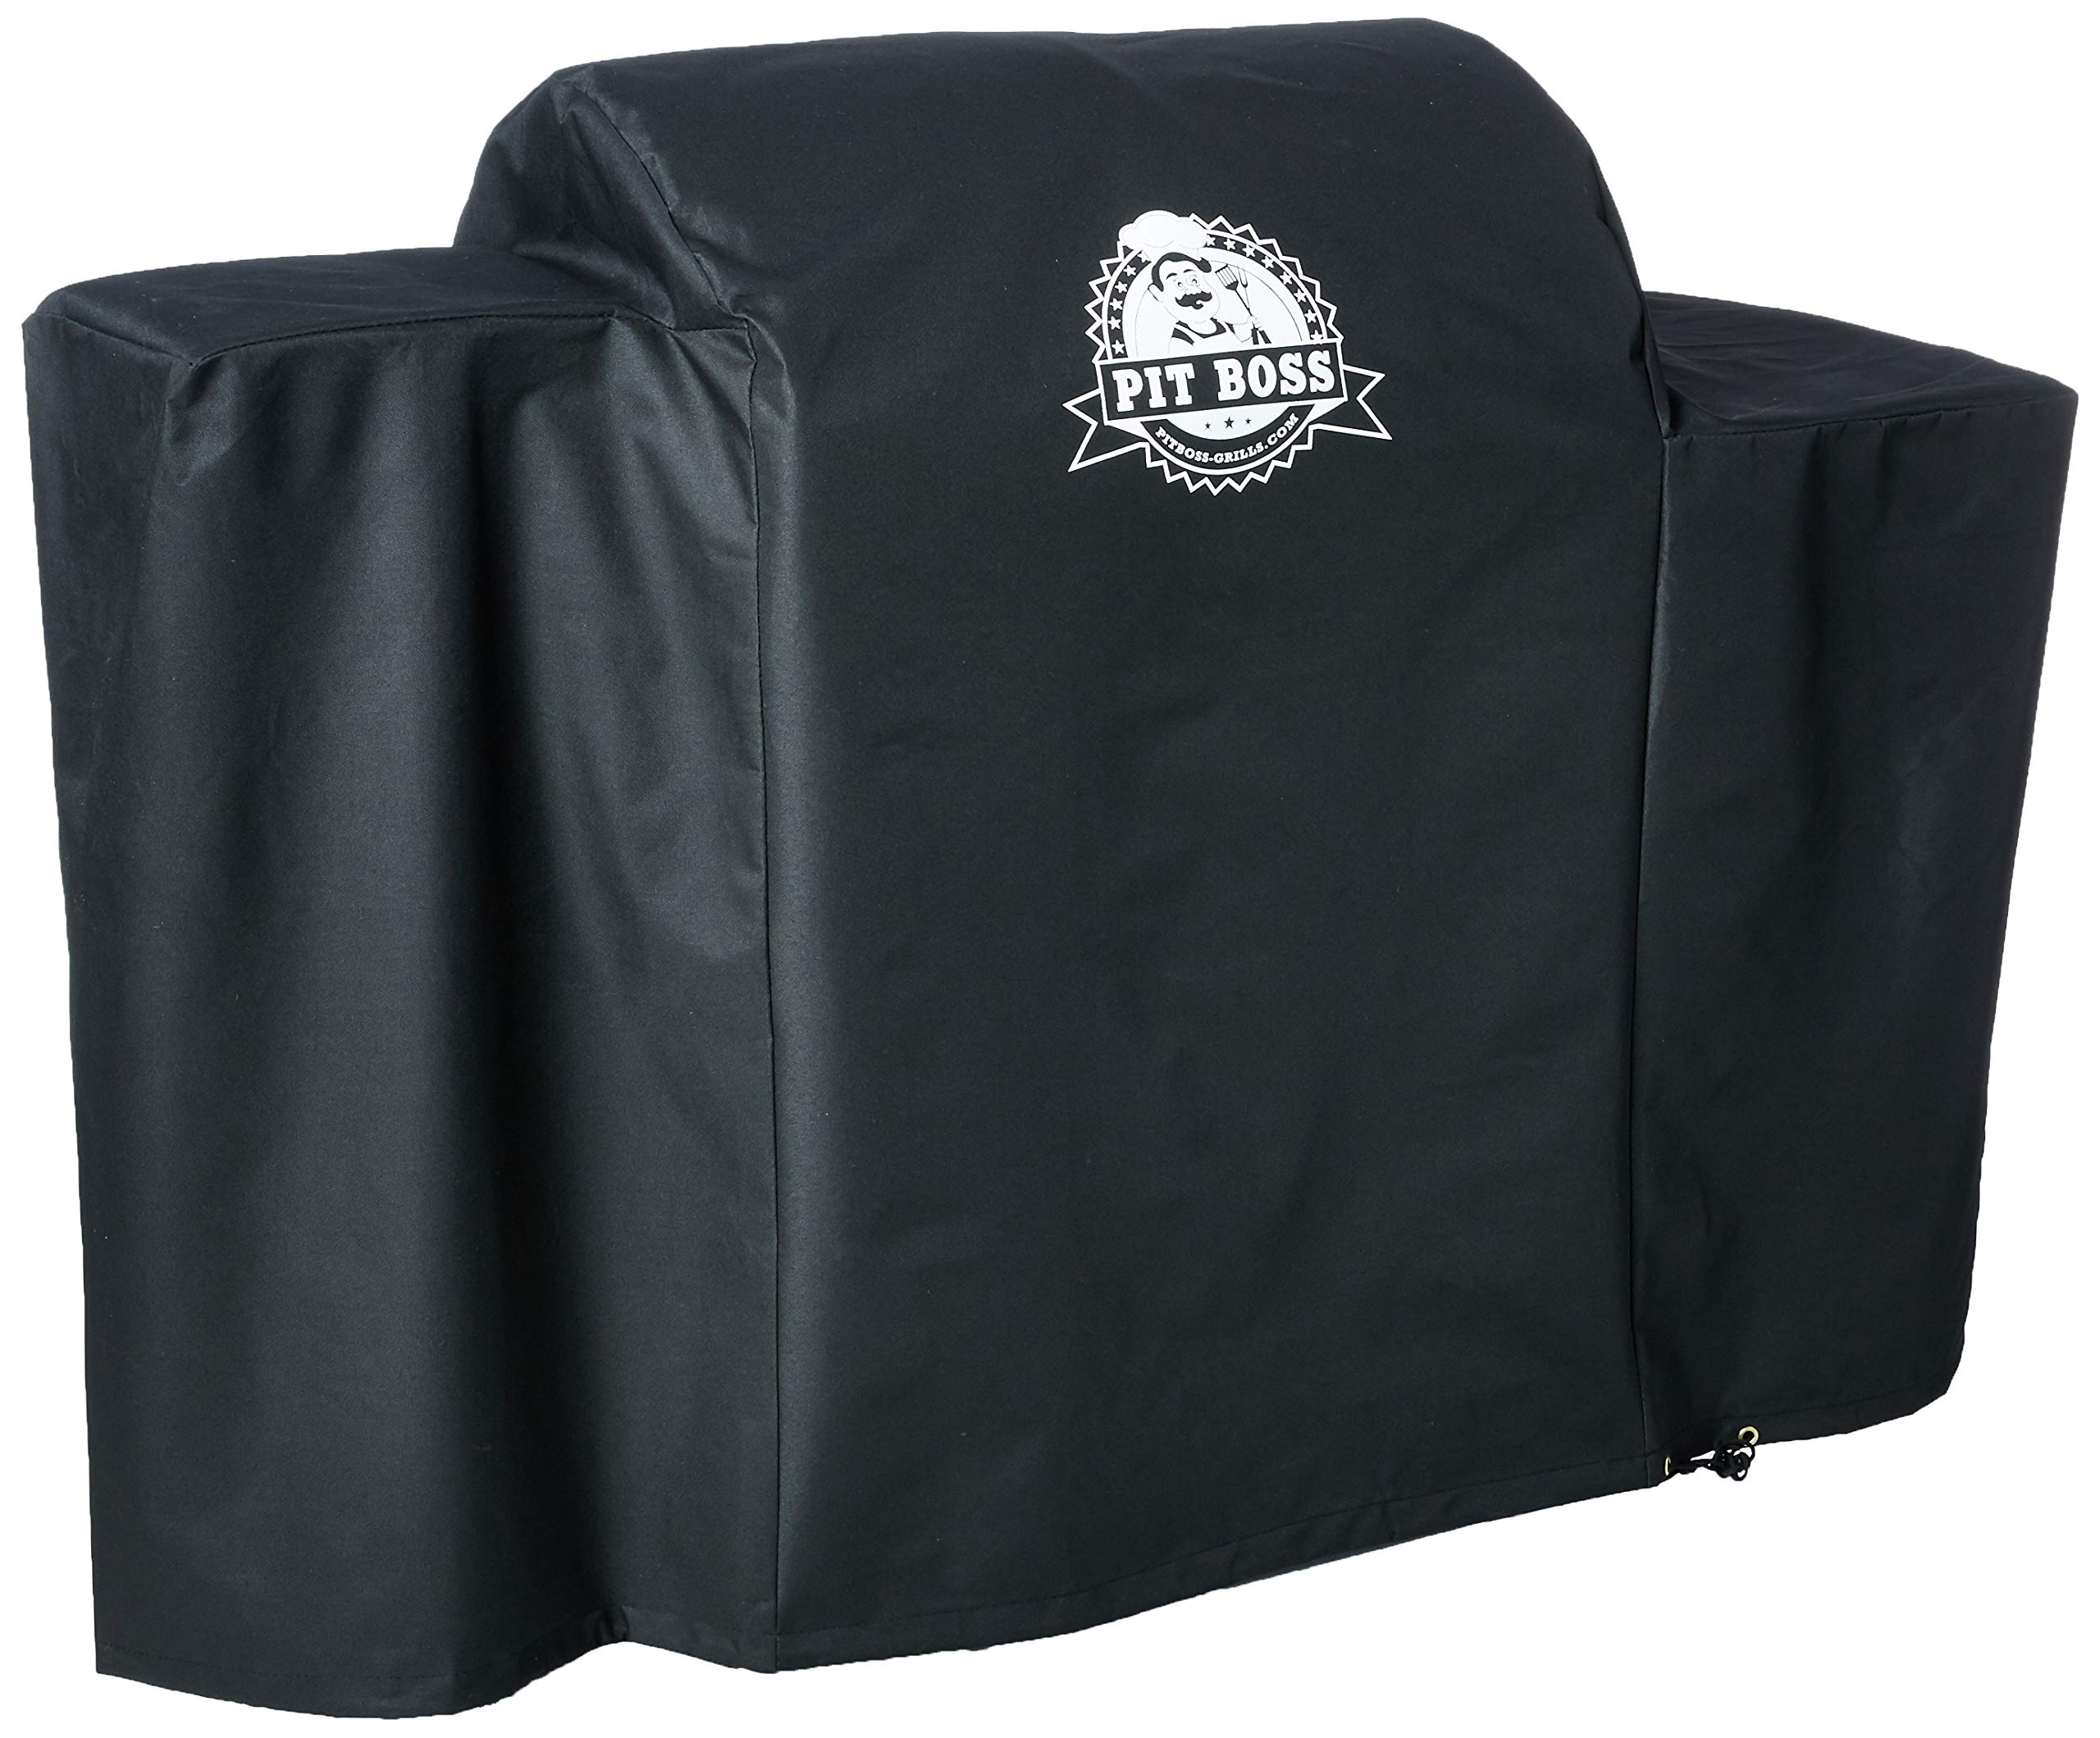 Pit Boss 73701 Grill Cover for 700D, 700S, 700SC Wood Pellet Grills by Pit Boss Grills